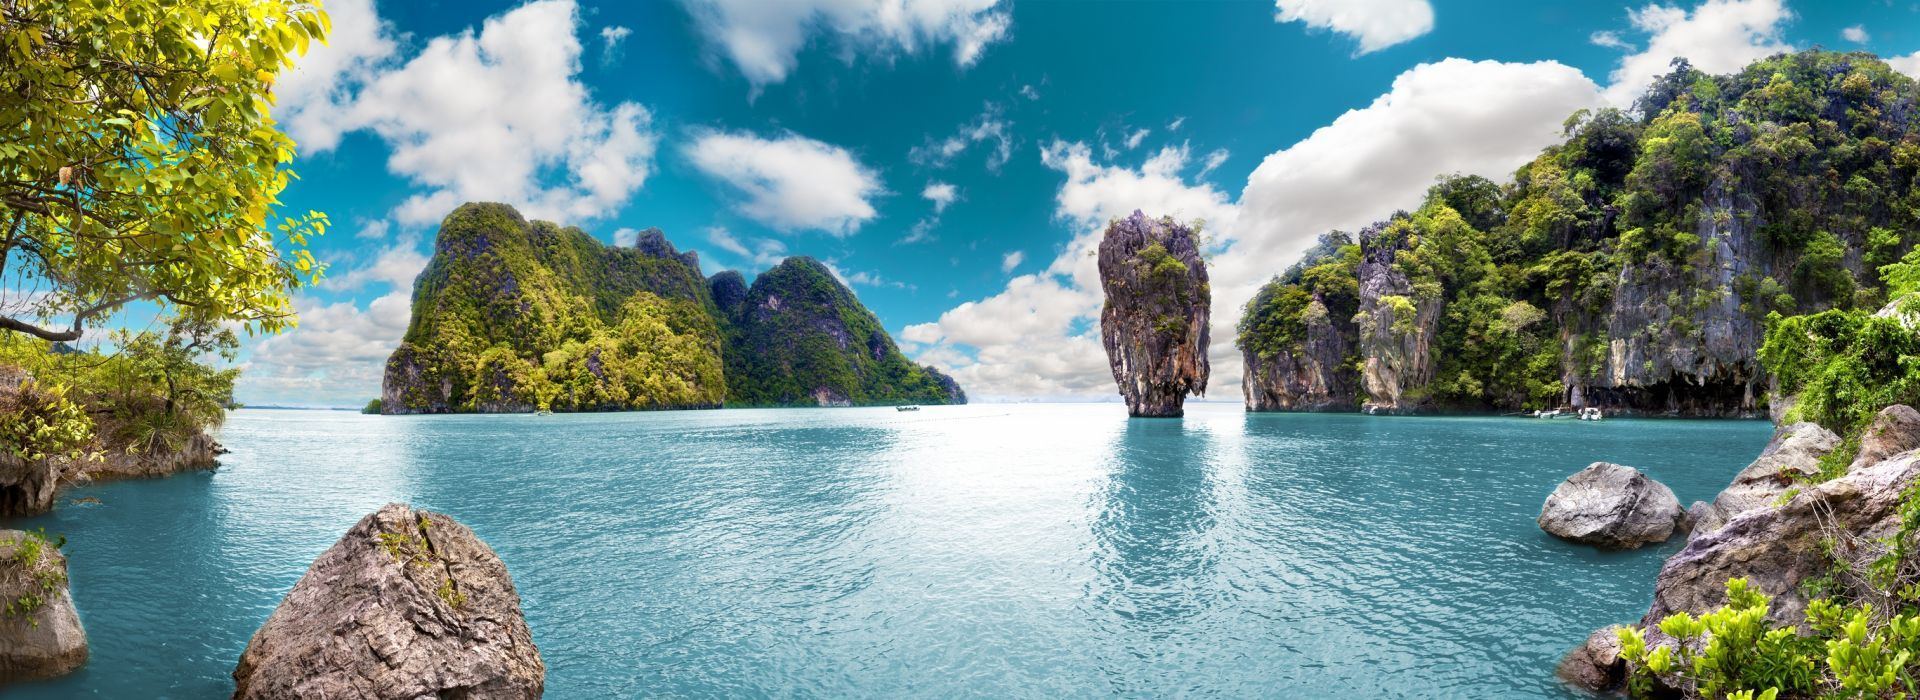 Sightseeing Tours in Thailand